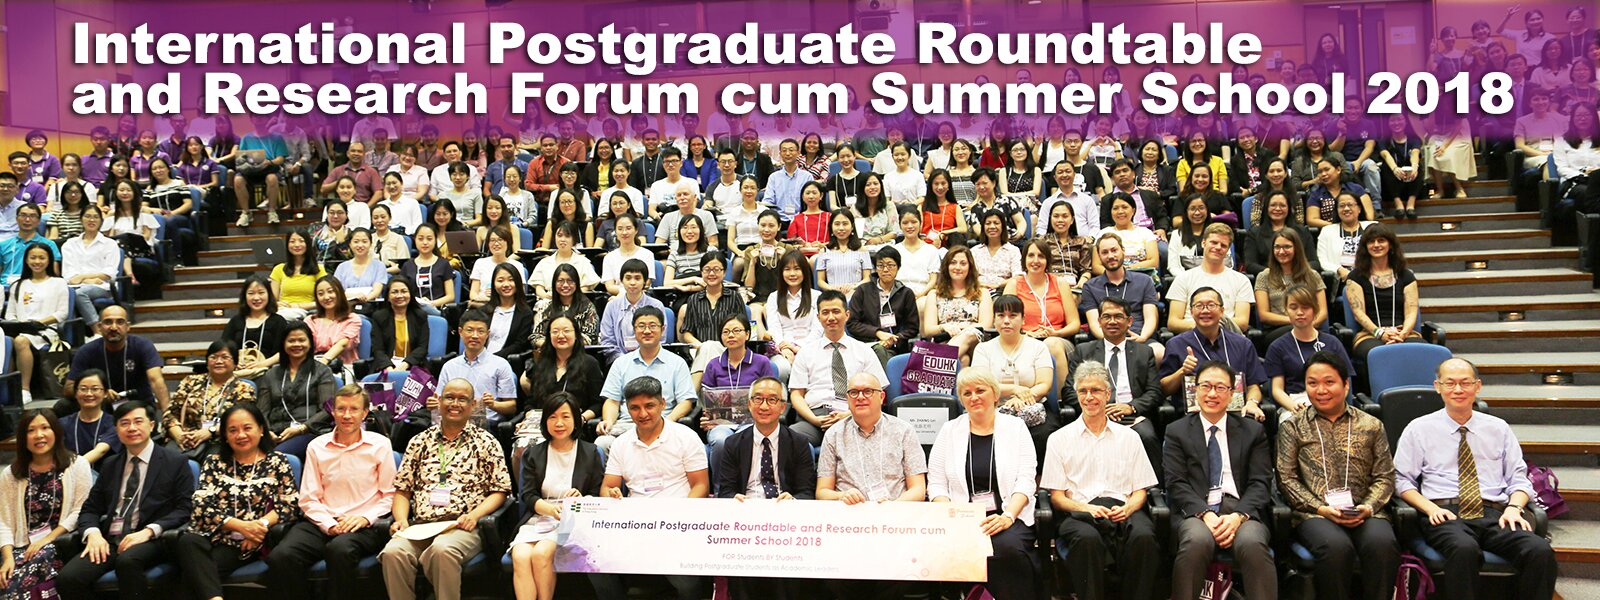 International Postgraduate Roundtable and Research Forum cum Summer School 2018